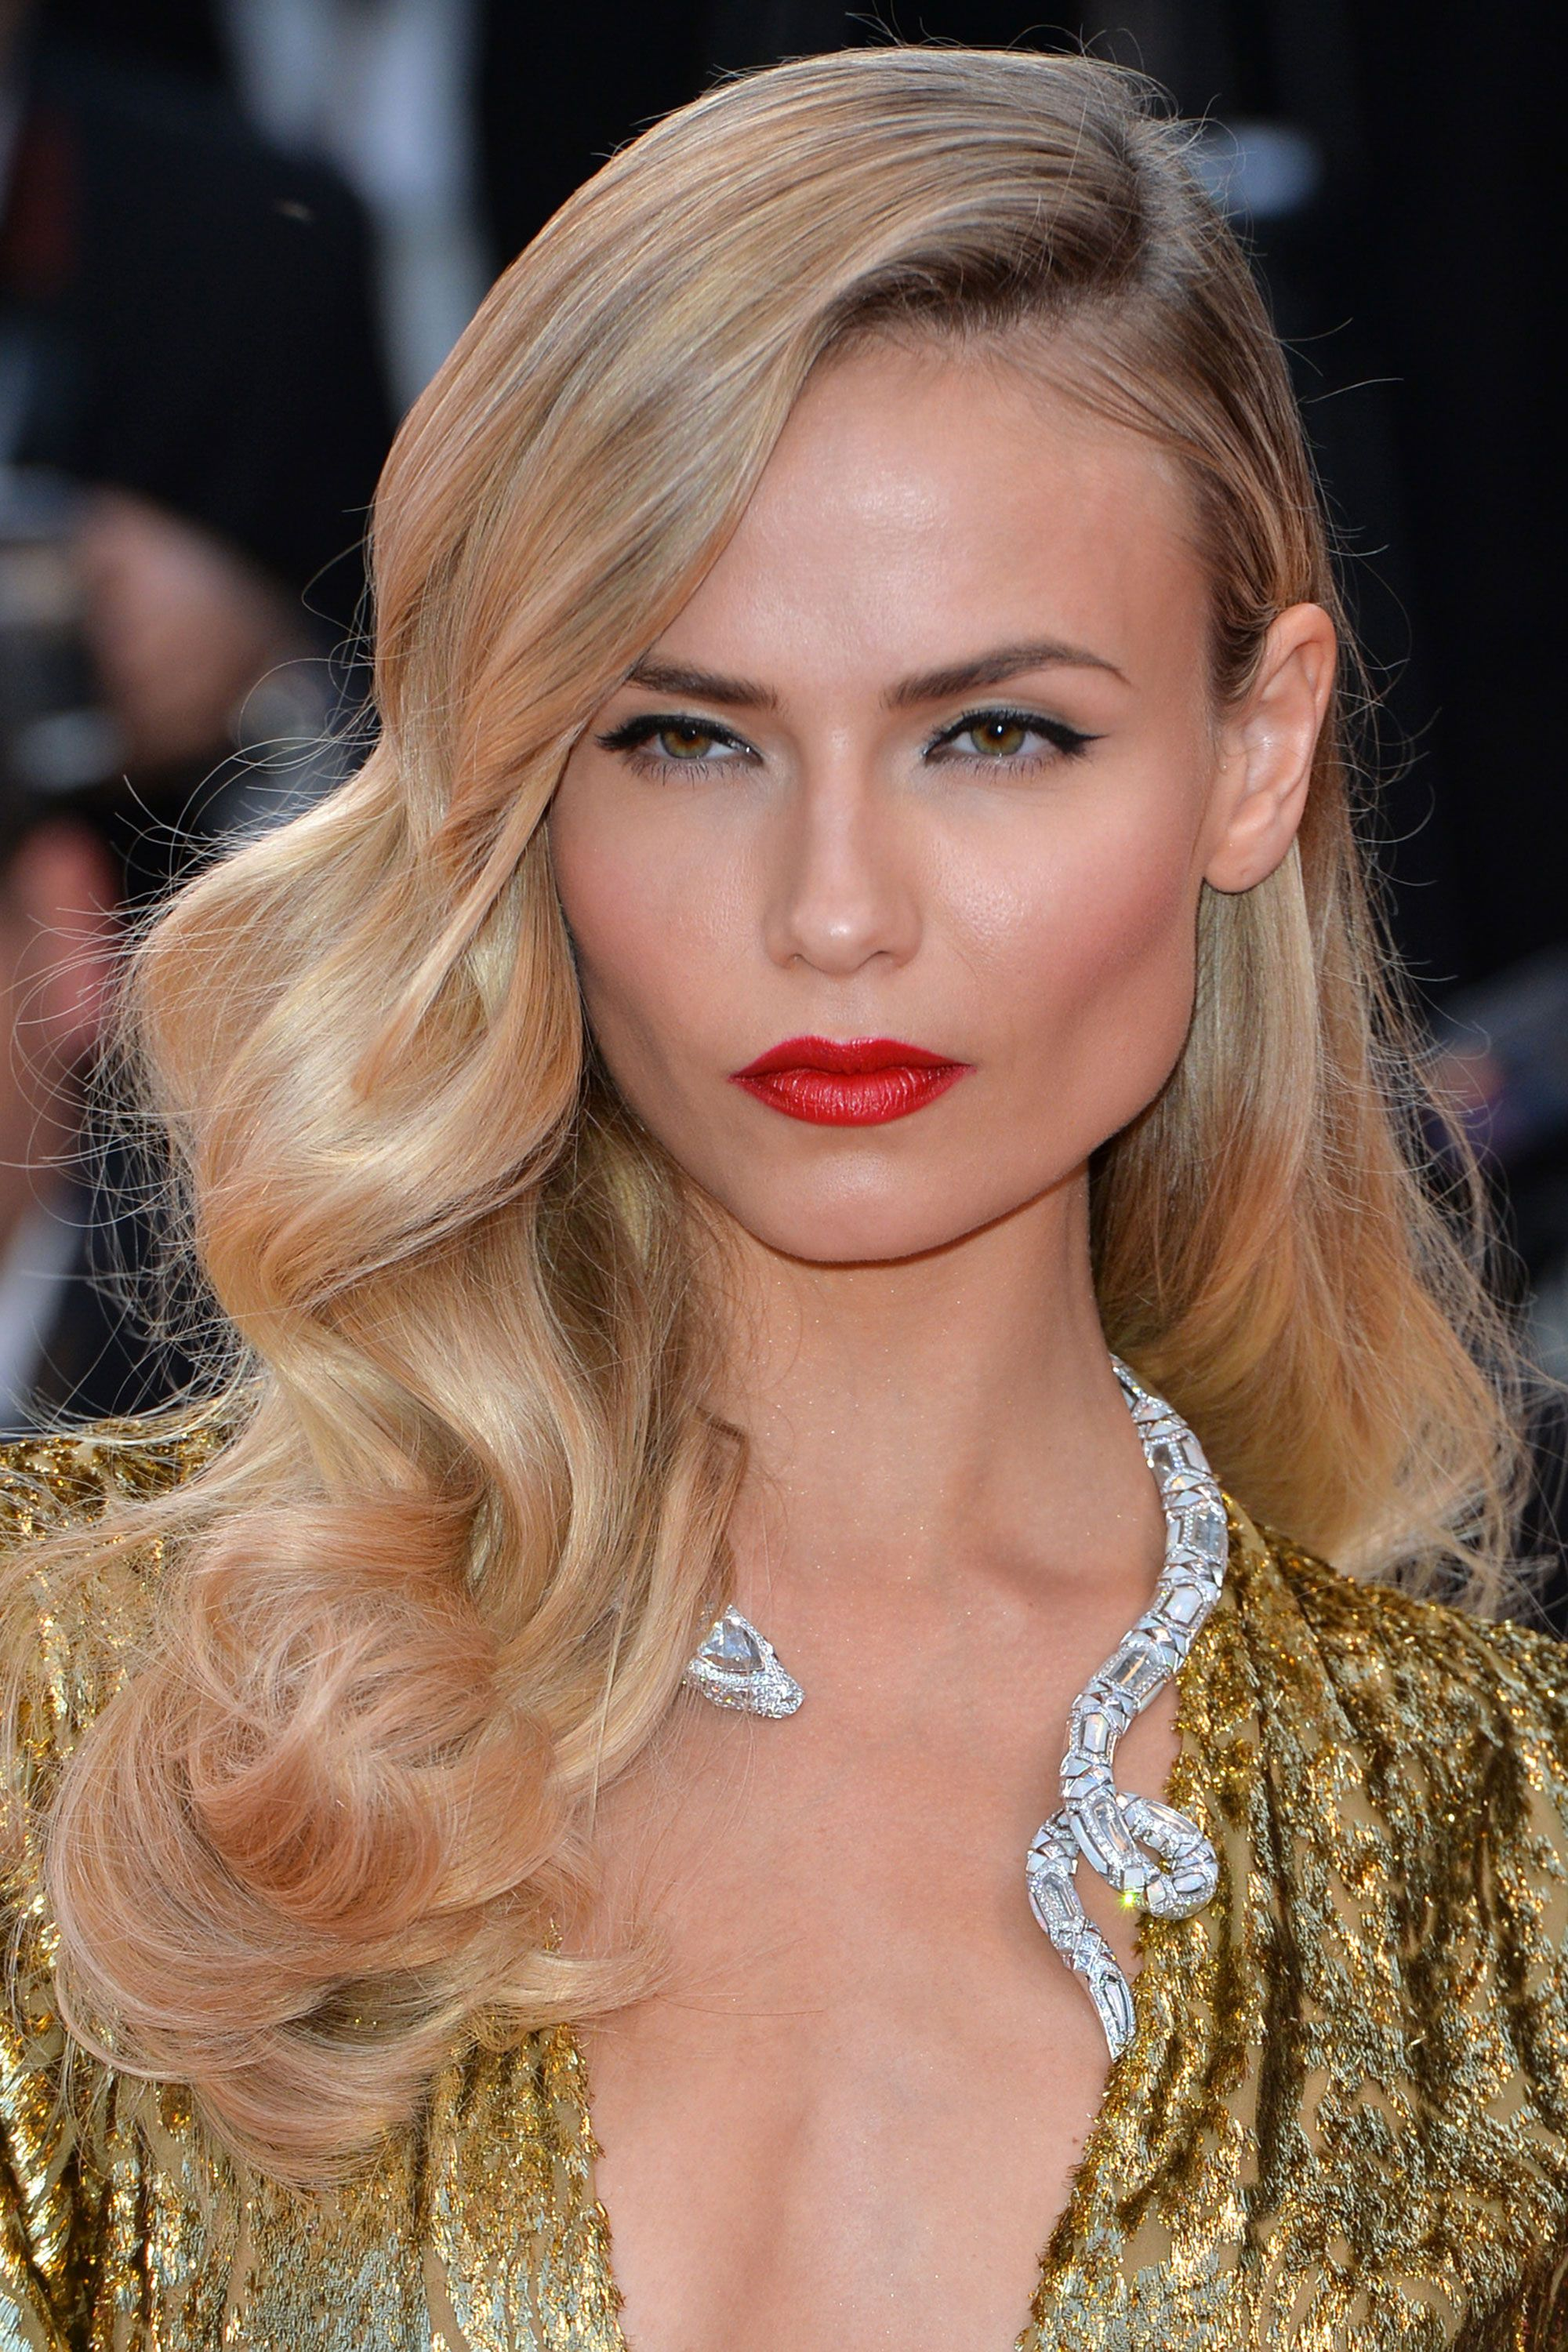 The Best Beauty Looks at the Cannes Film Festival Side